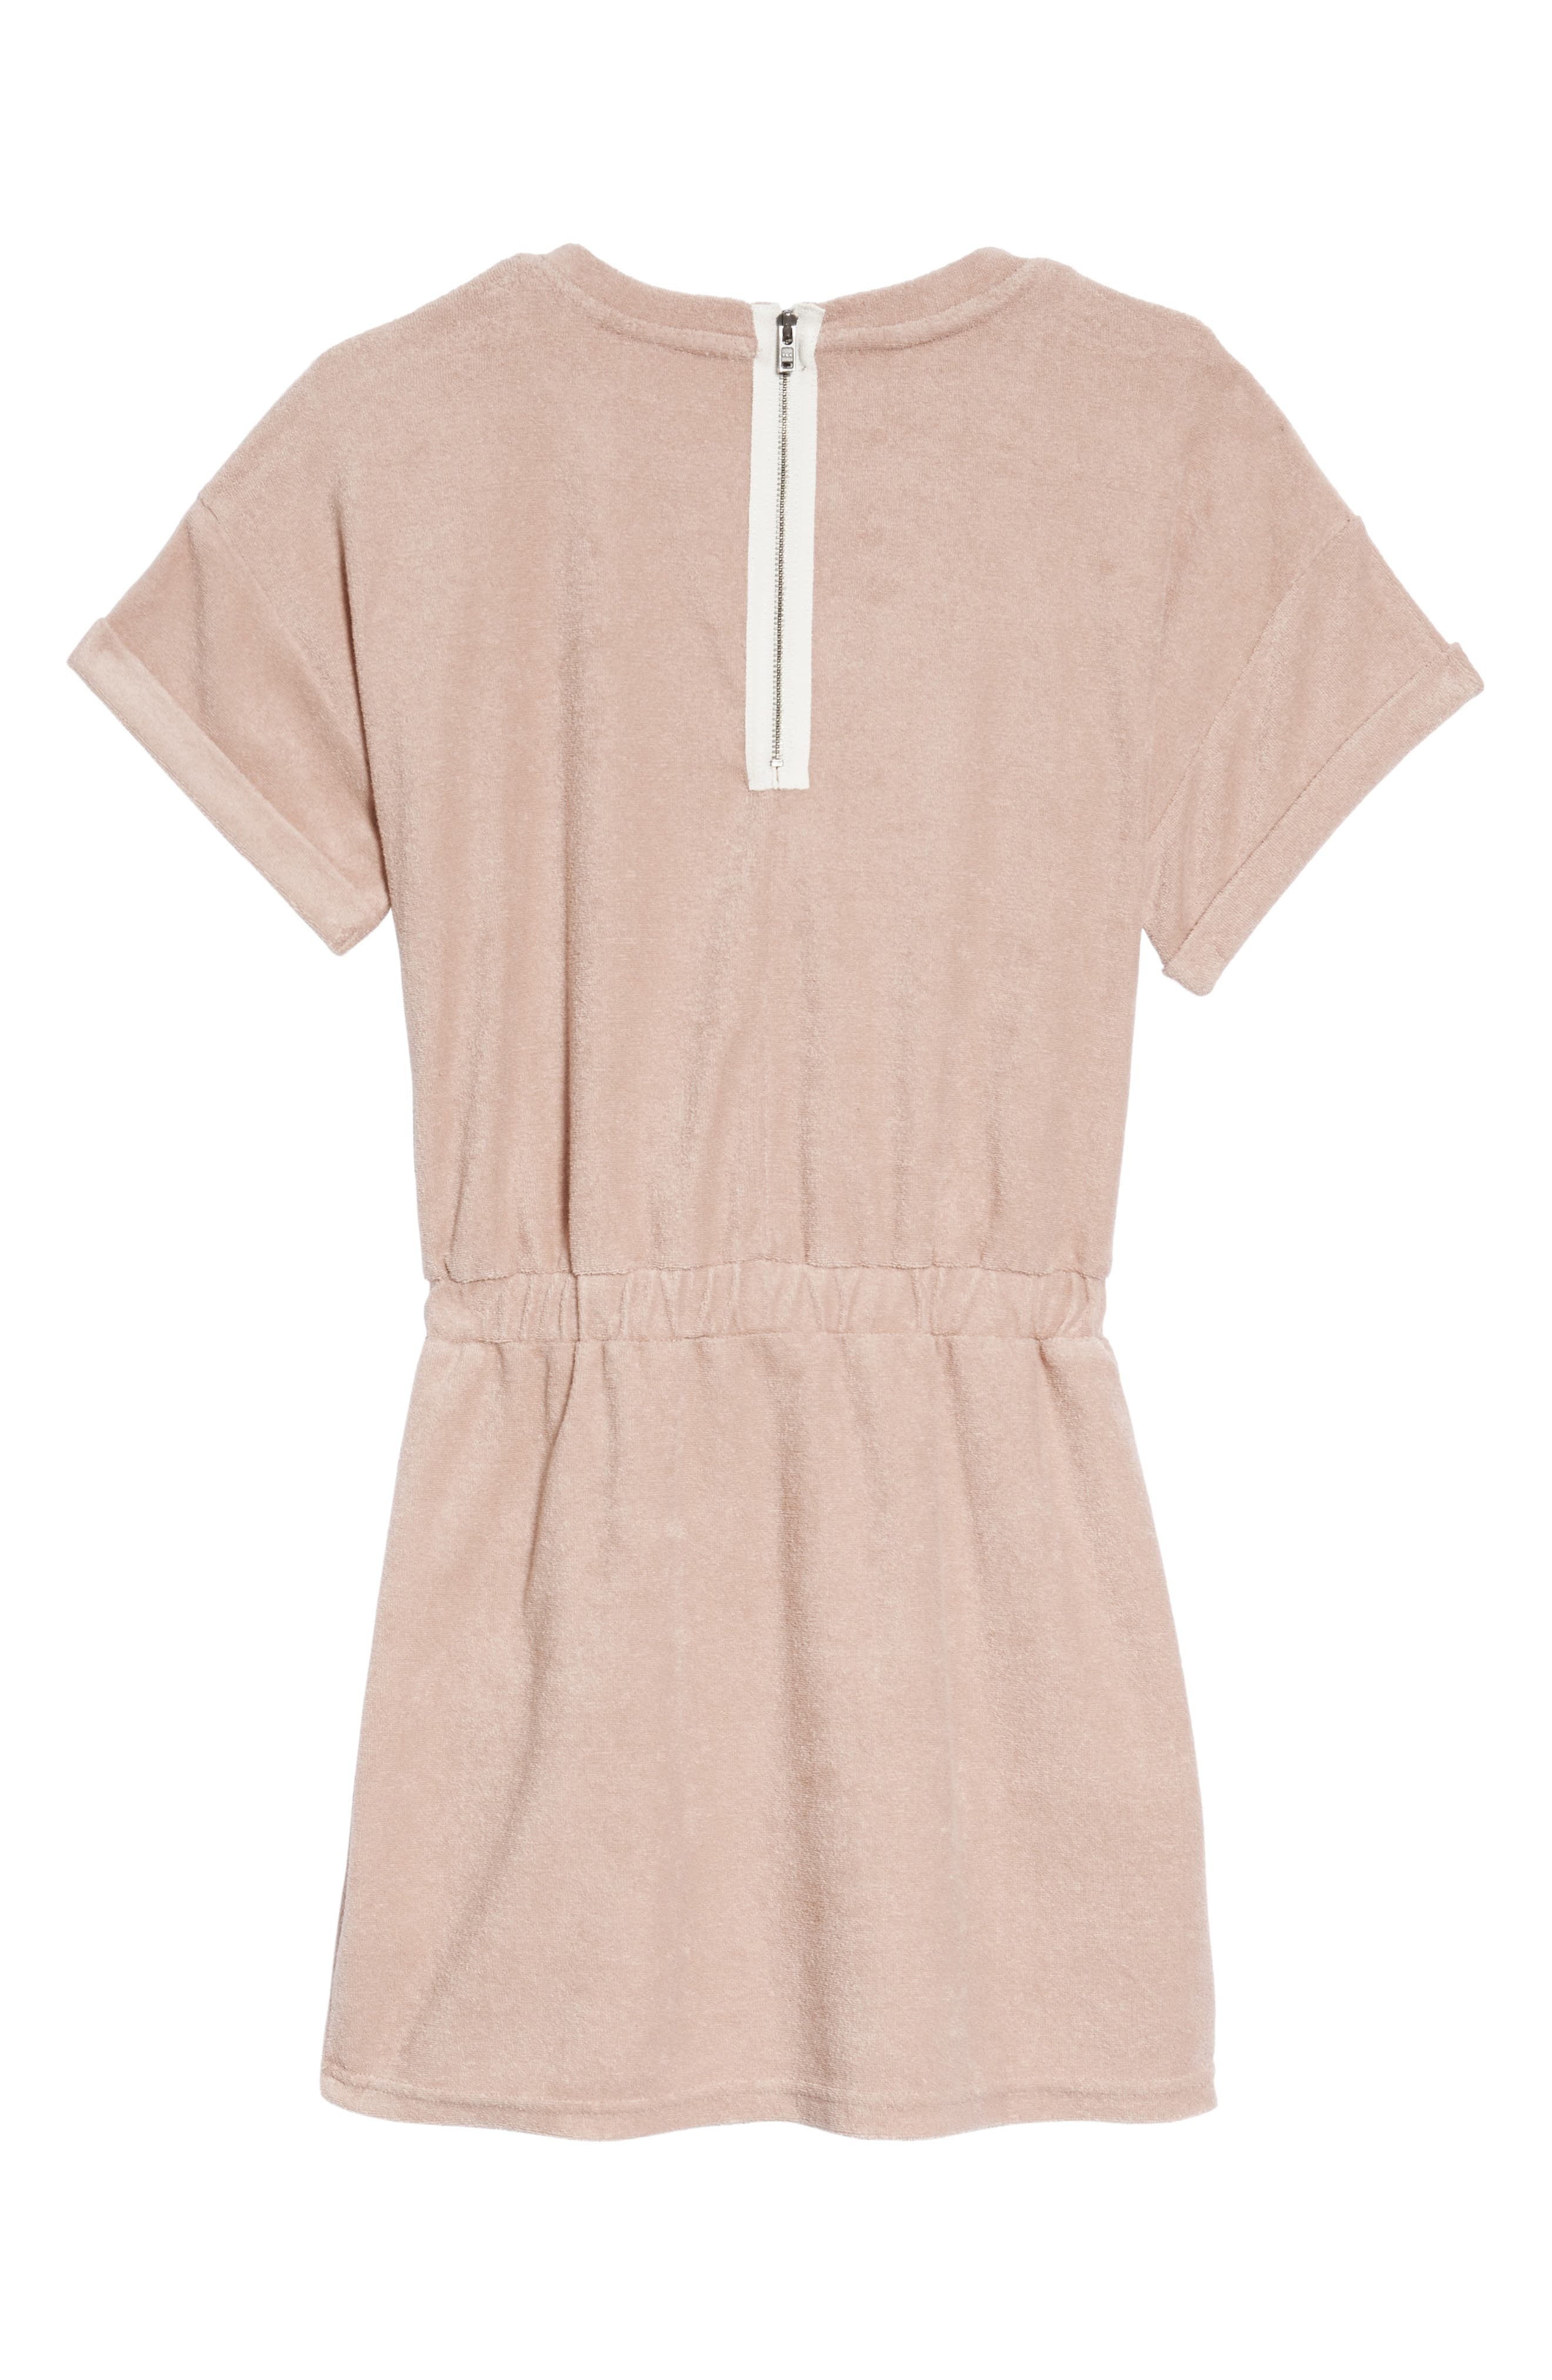 Elana French Terry Dress,                             Alternate thumbnail 2, color,                             Pretty Pink